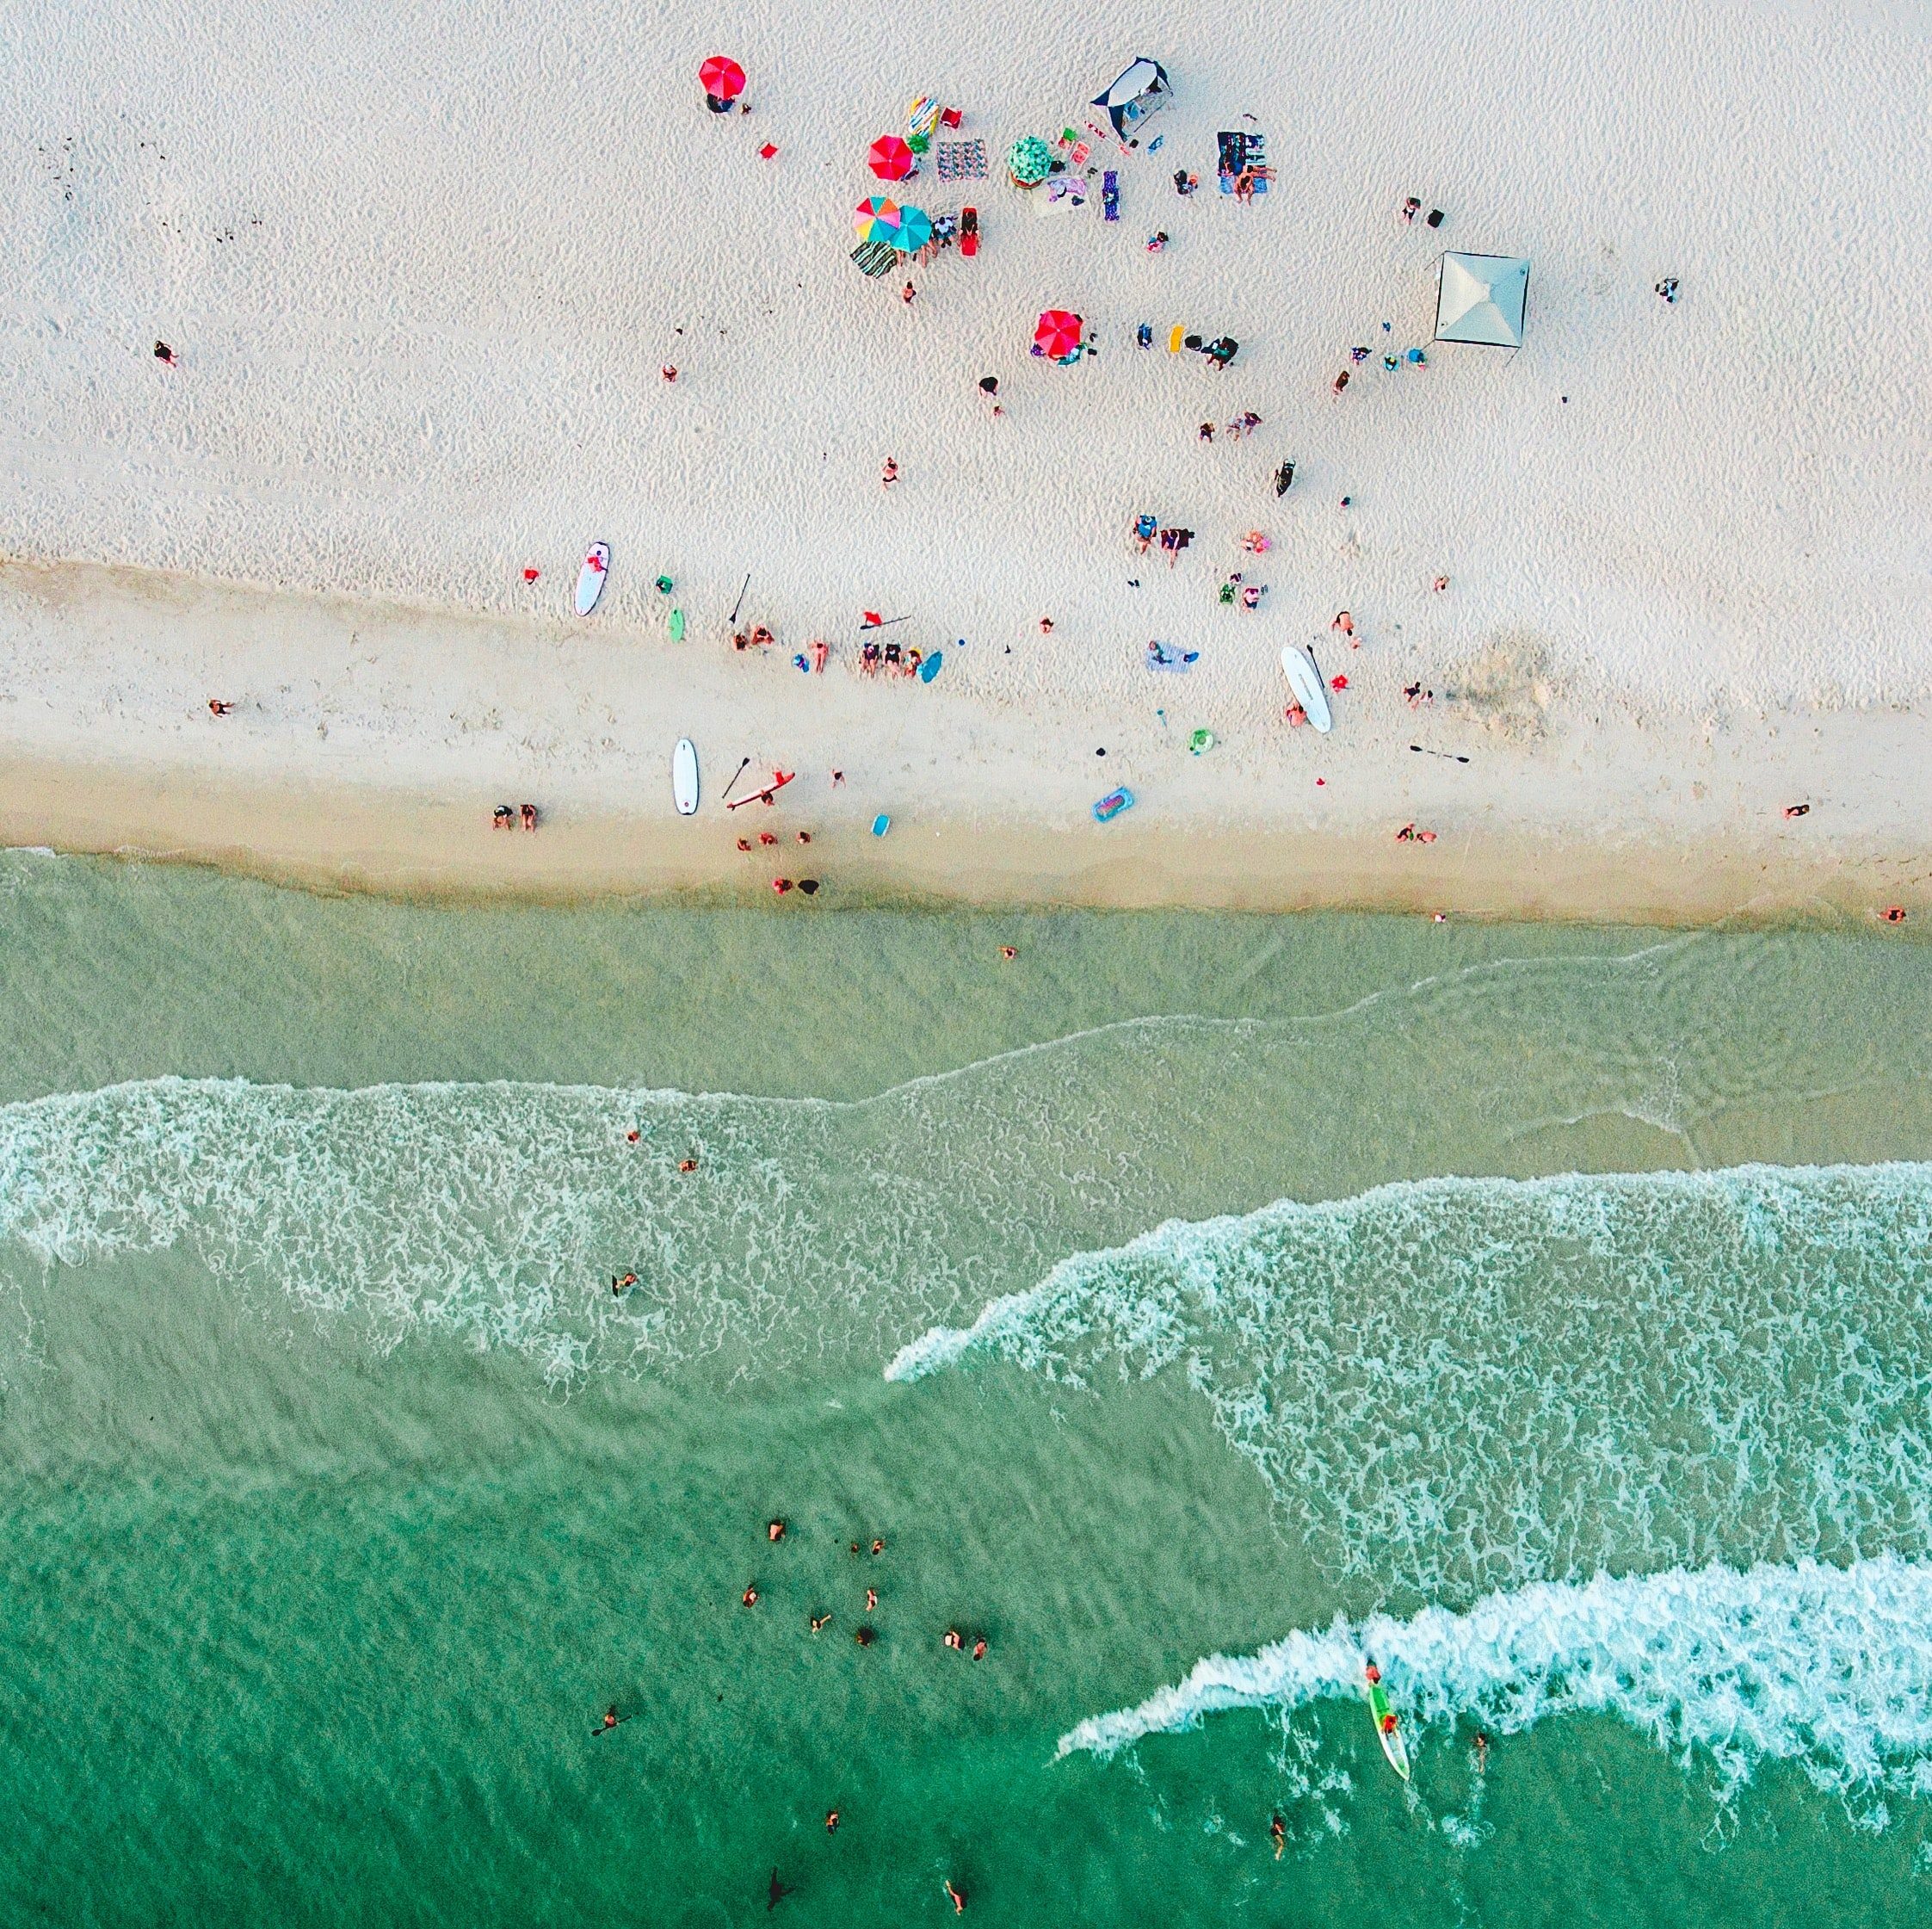 A drone view of people on a beach.